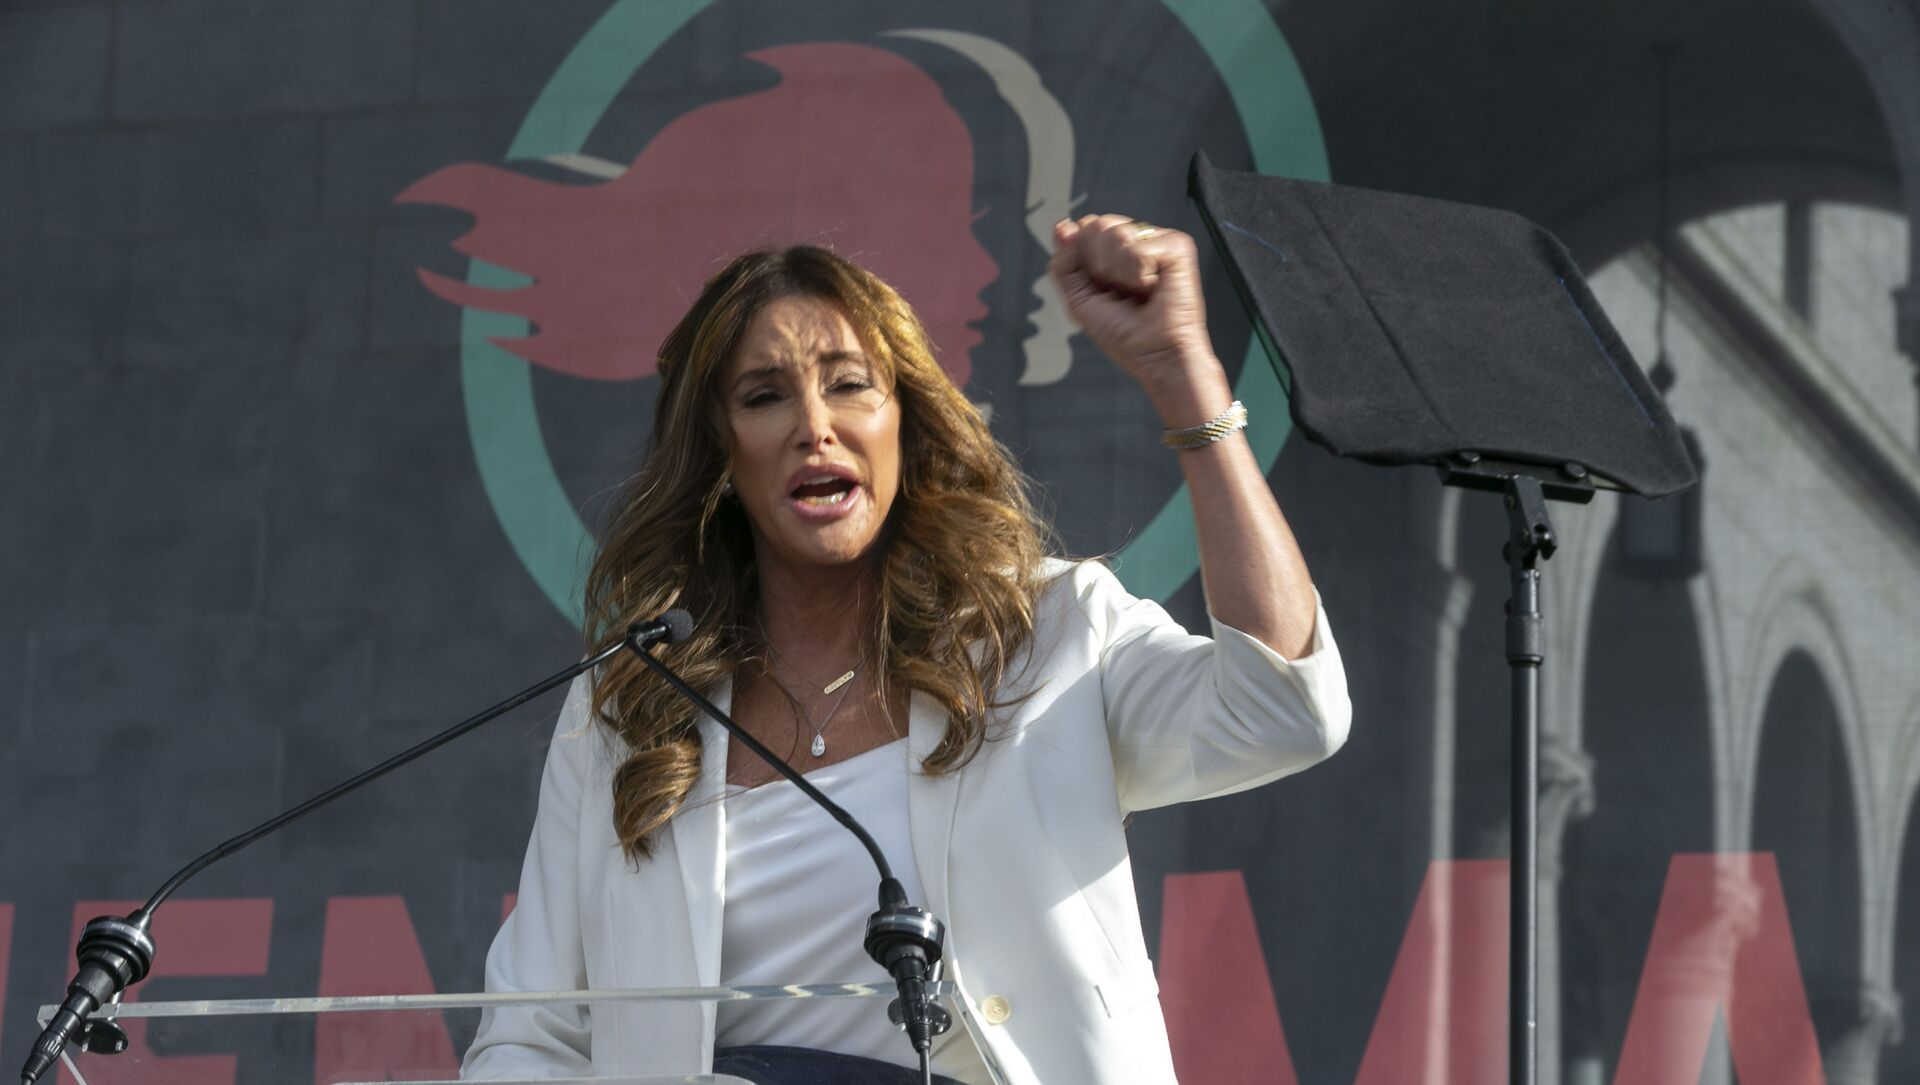 Transgender rights activist Caitlyn Jenner speaks at the 4th Women's March in Los Angeles on Saturday, Jan. 18, 2020. Thousands gathered in cities across the country Saturday as part of the nationwide Women's March rallies focused on issues such as climate change, pay equity, reproductive rights and immigration. (AP Photo/Damian Dovarganes) - Sputnik International, 1920, 04.05.2021